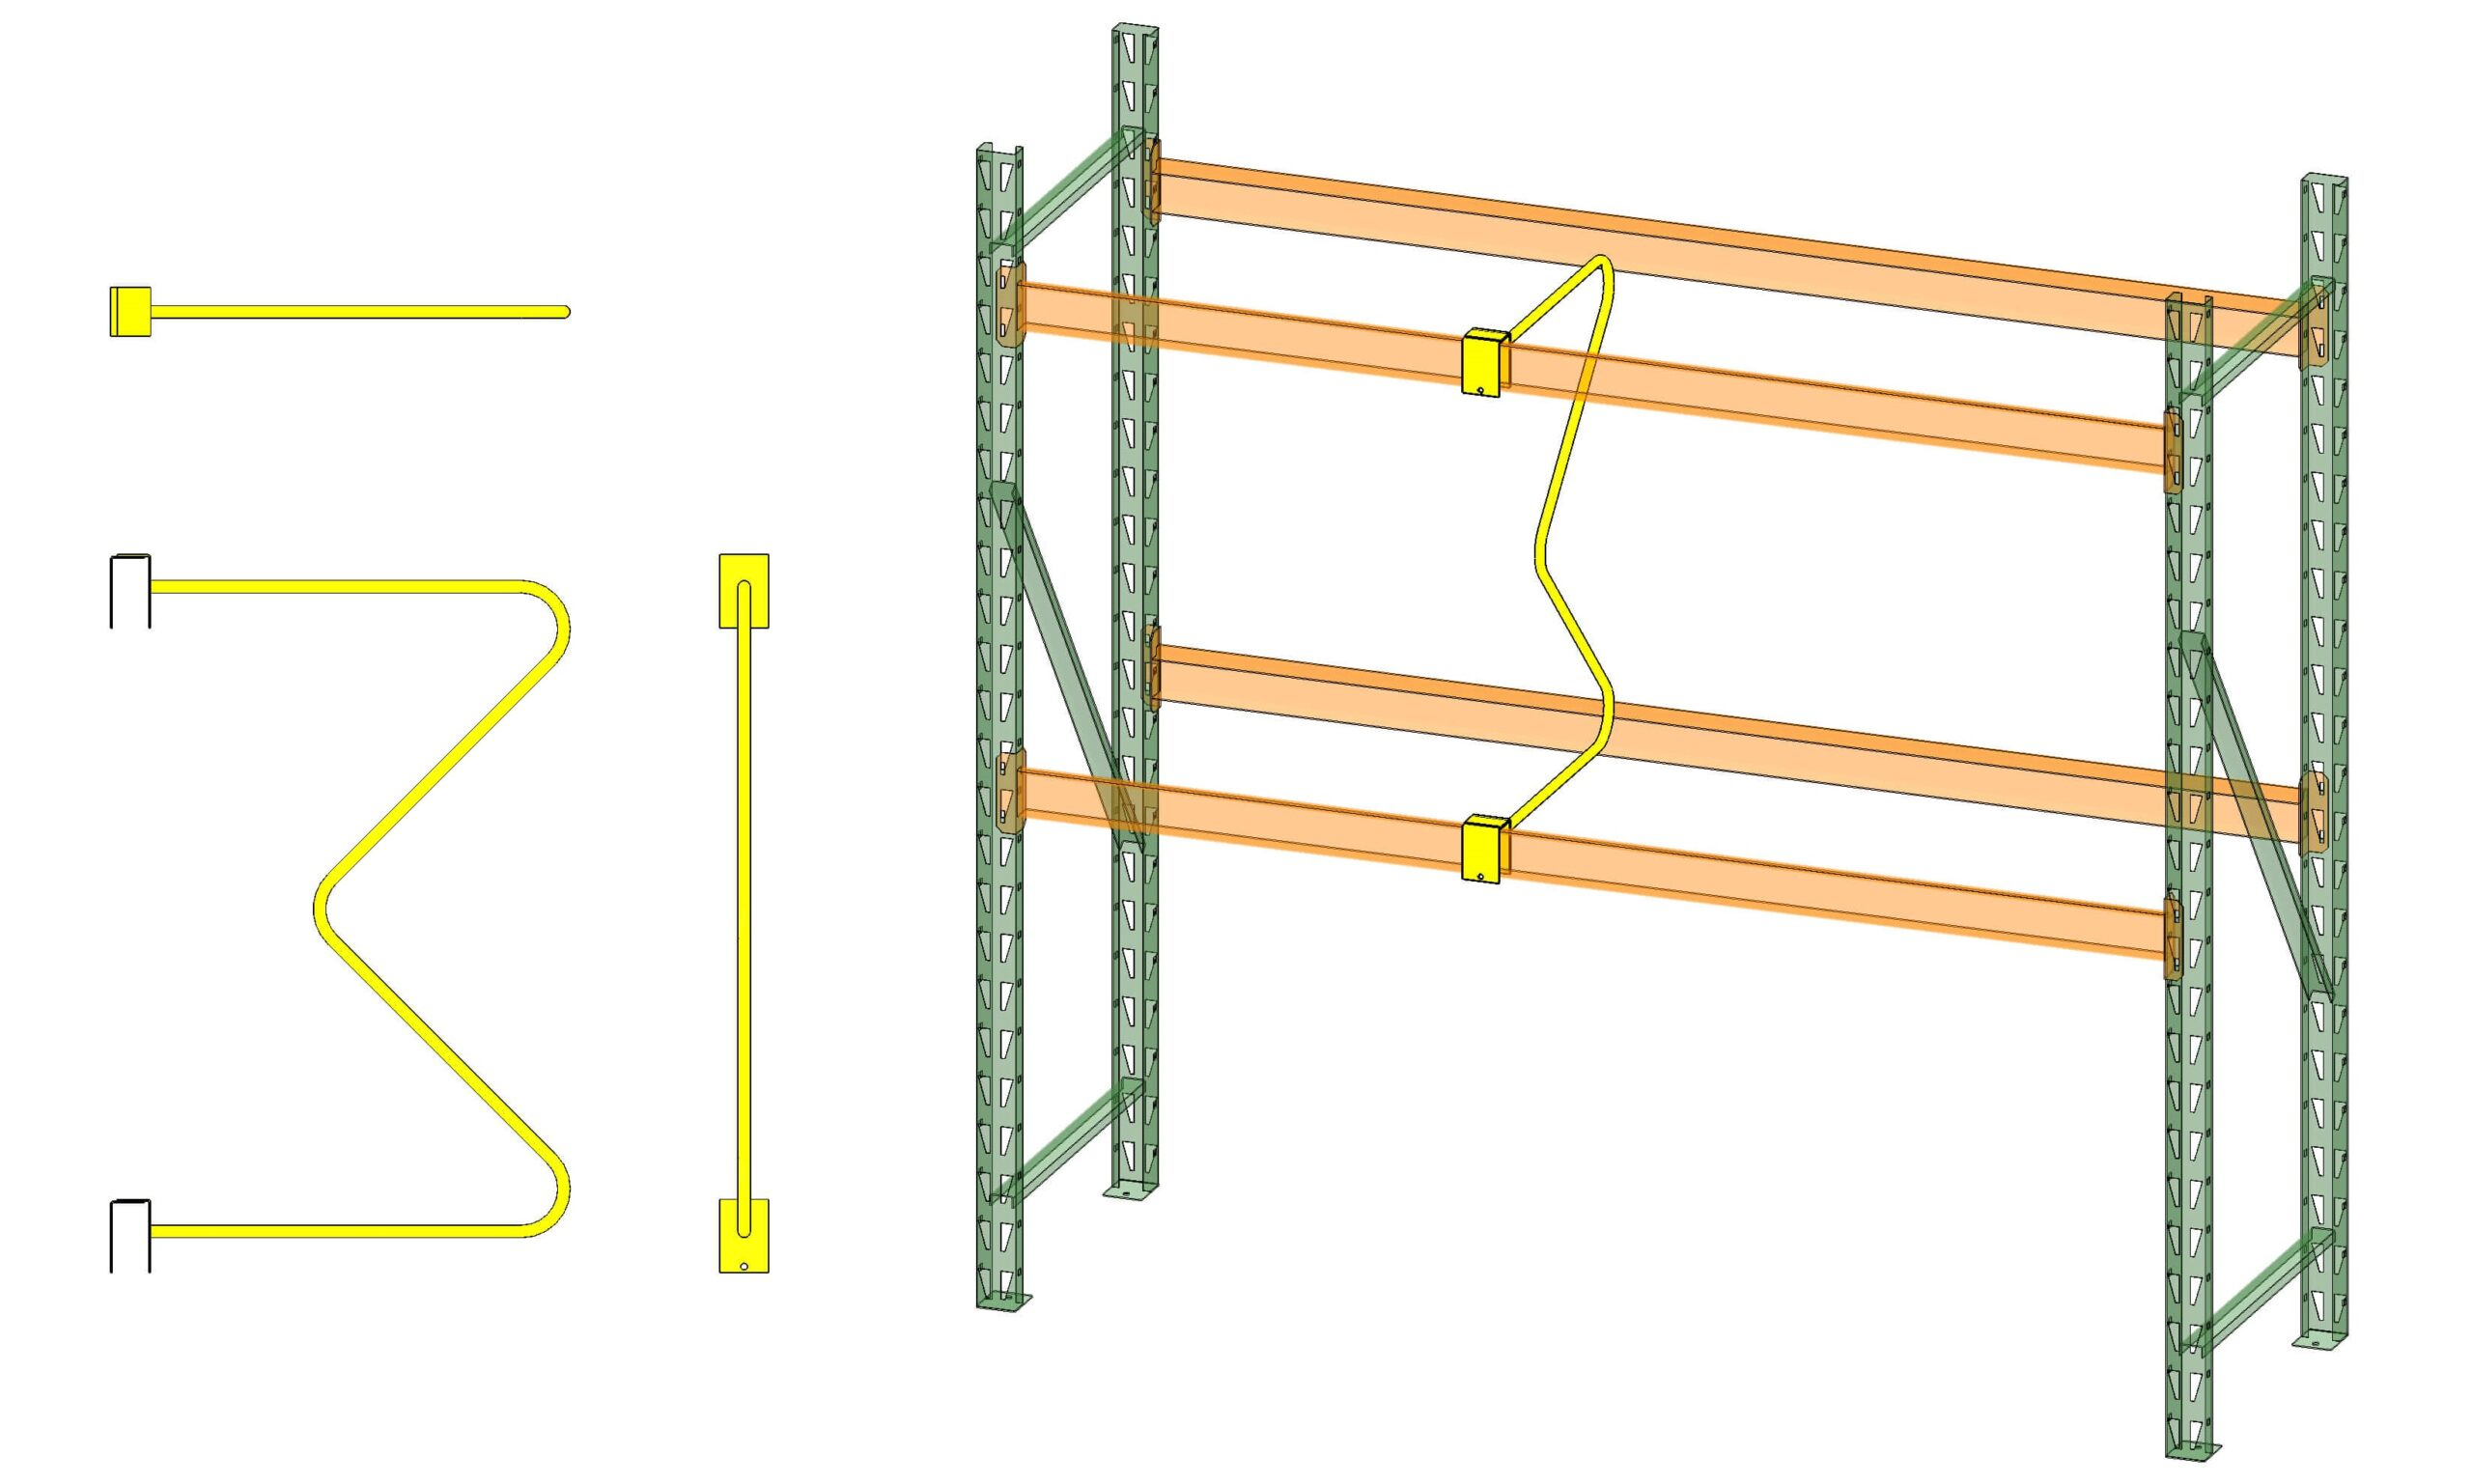 MD54-42 Pallet Rack M Divider Side and Top View on Pallet Racking by EGA Products